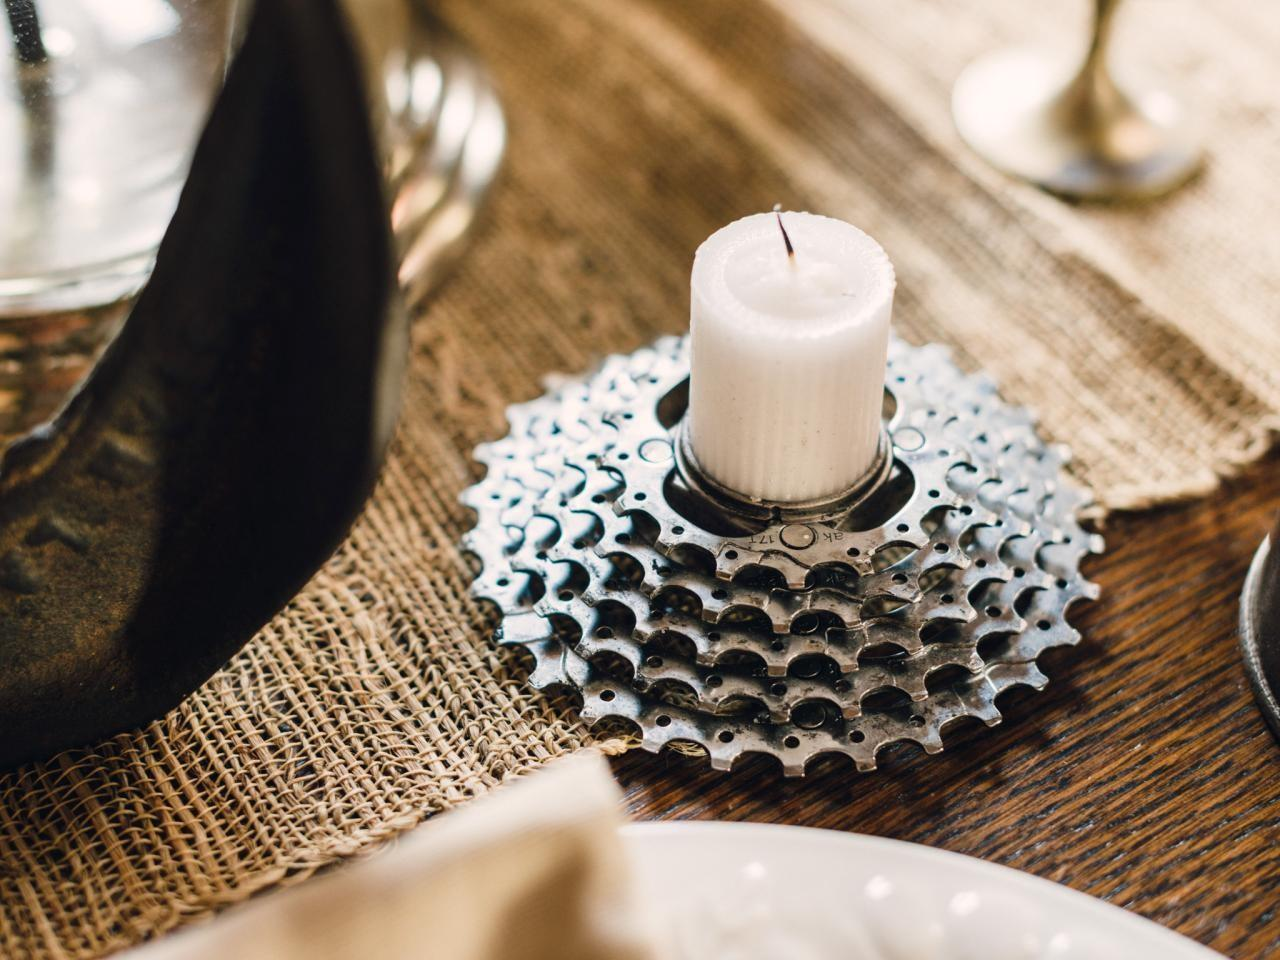 Make Bicycle Gear Votive Holders Tos Diy